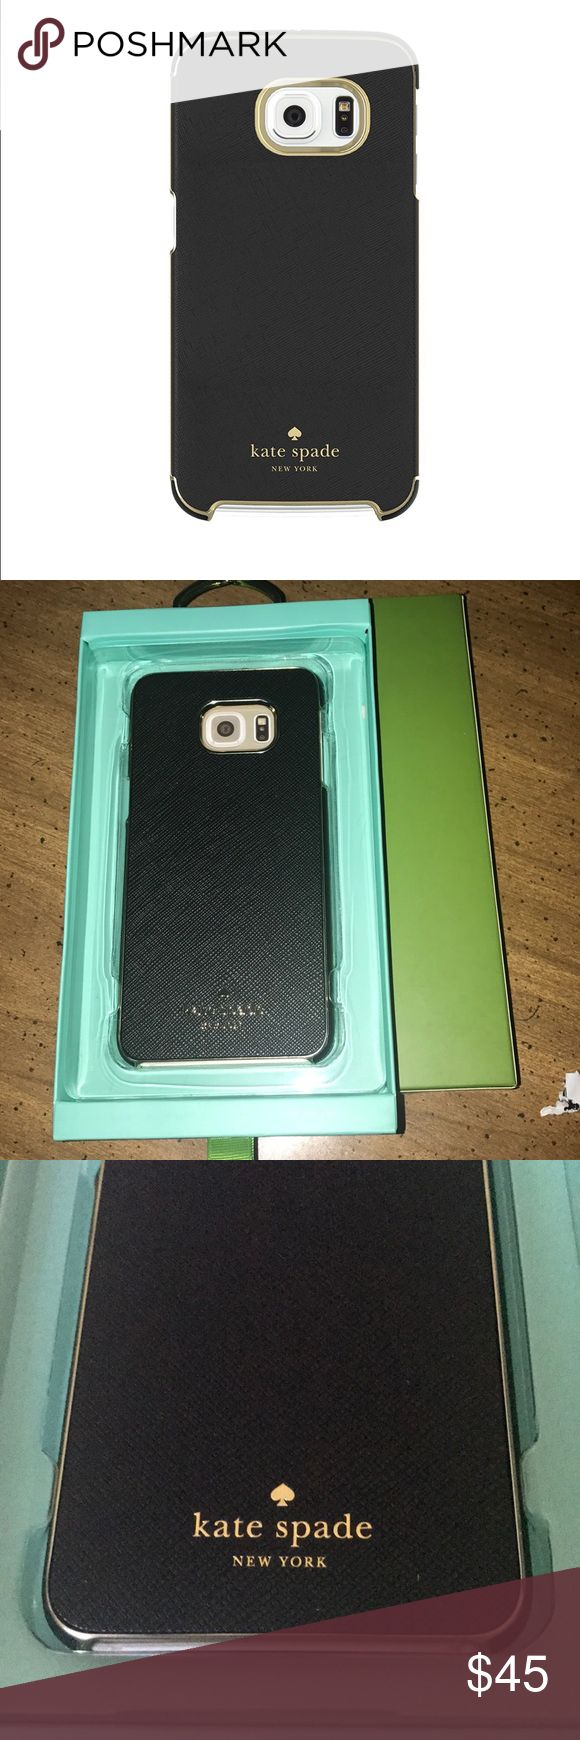 Kate Spade Samsung Galaxy S6 edge Case, Black The sleek, slim kate spade new york Wrap Case provides superior style and full device coverage. Designed in the latest fashion-forward colors, the lightweight kate spade new york Wrap Case offers a whole new level of sophistication and style. kate spade Accessories Phone Cases